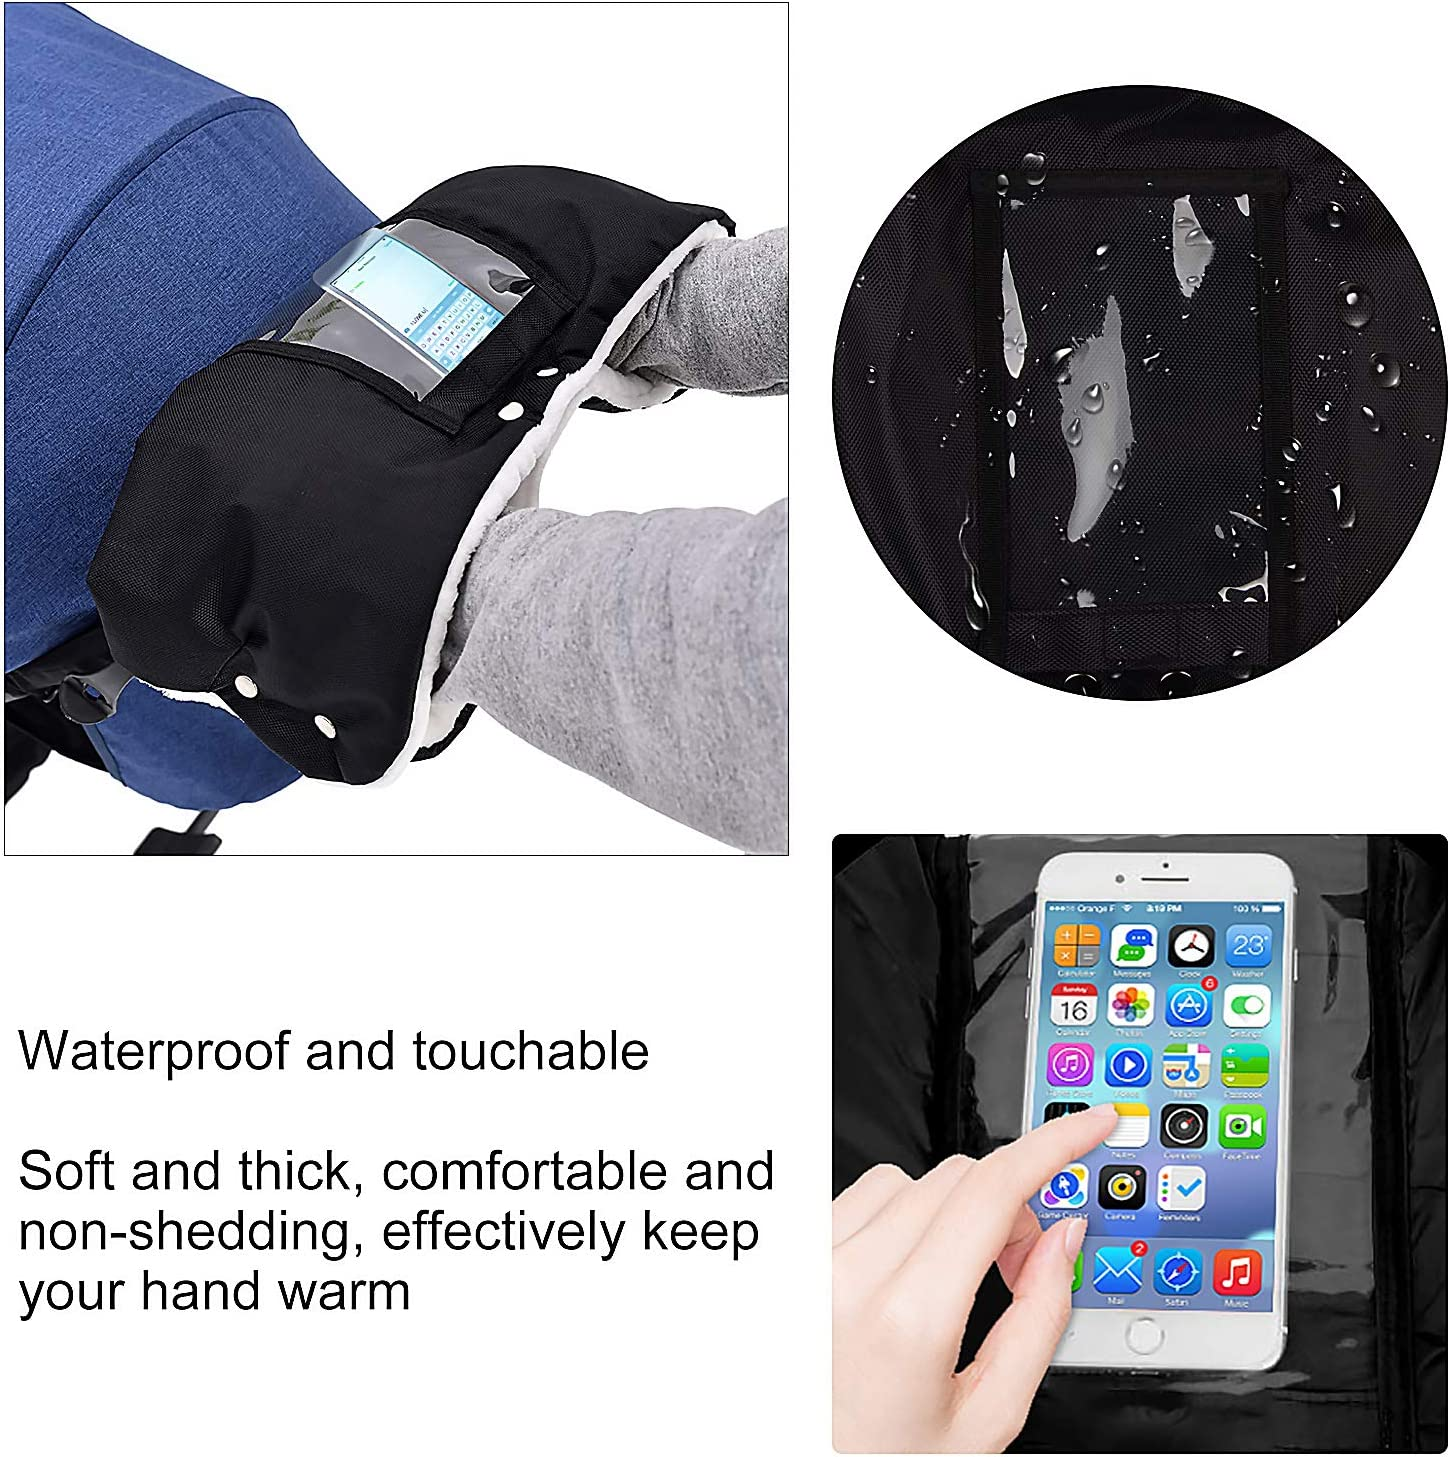 EXLECO Stroller Hand Muffs Black Pushchair Gloves Baby Extra Thick Stroller Gloves Waterproof Anti-Freeze Warm Winter Pram Glaves with Phone Pocket for All Stroller and Buggy